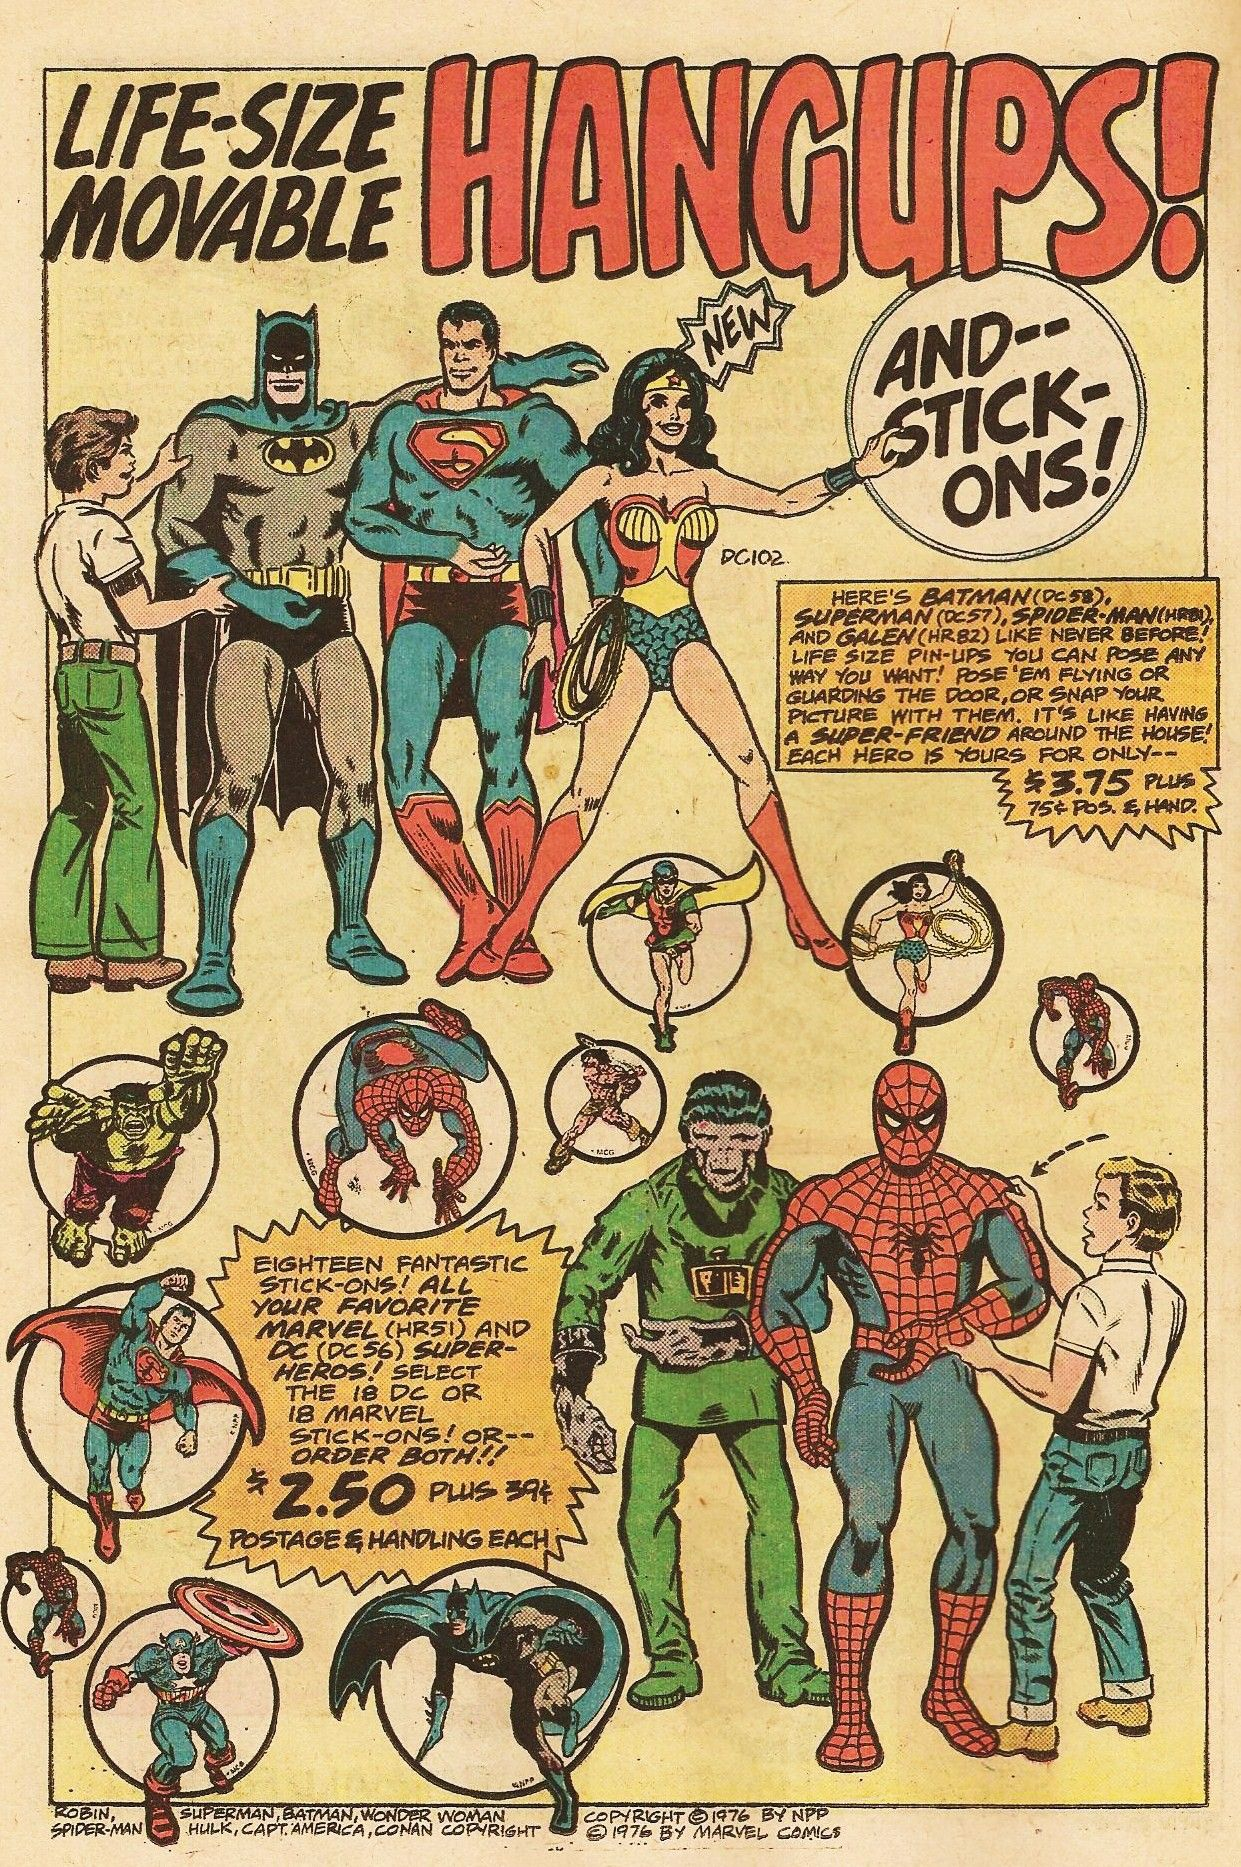 Pin By Mark Lemaster On Juguetes Old Comic Books Vintage Comic Books Comics